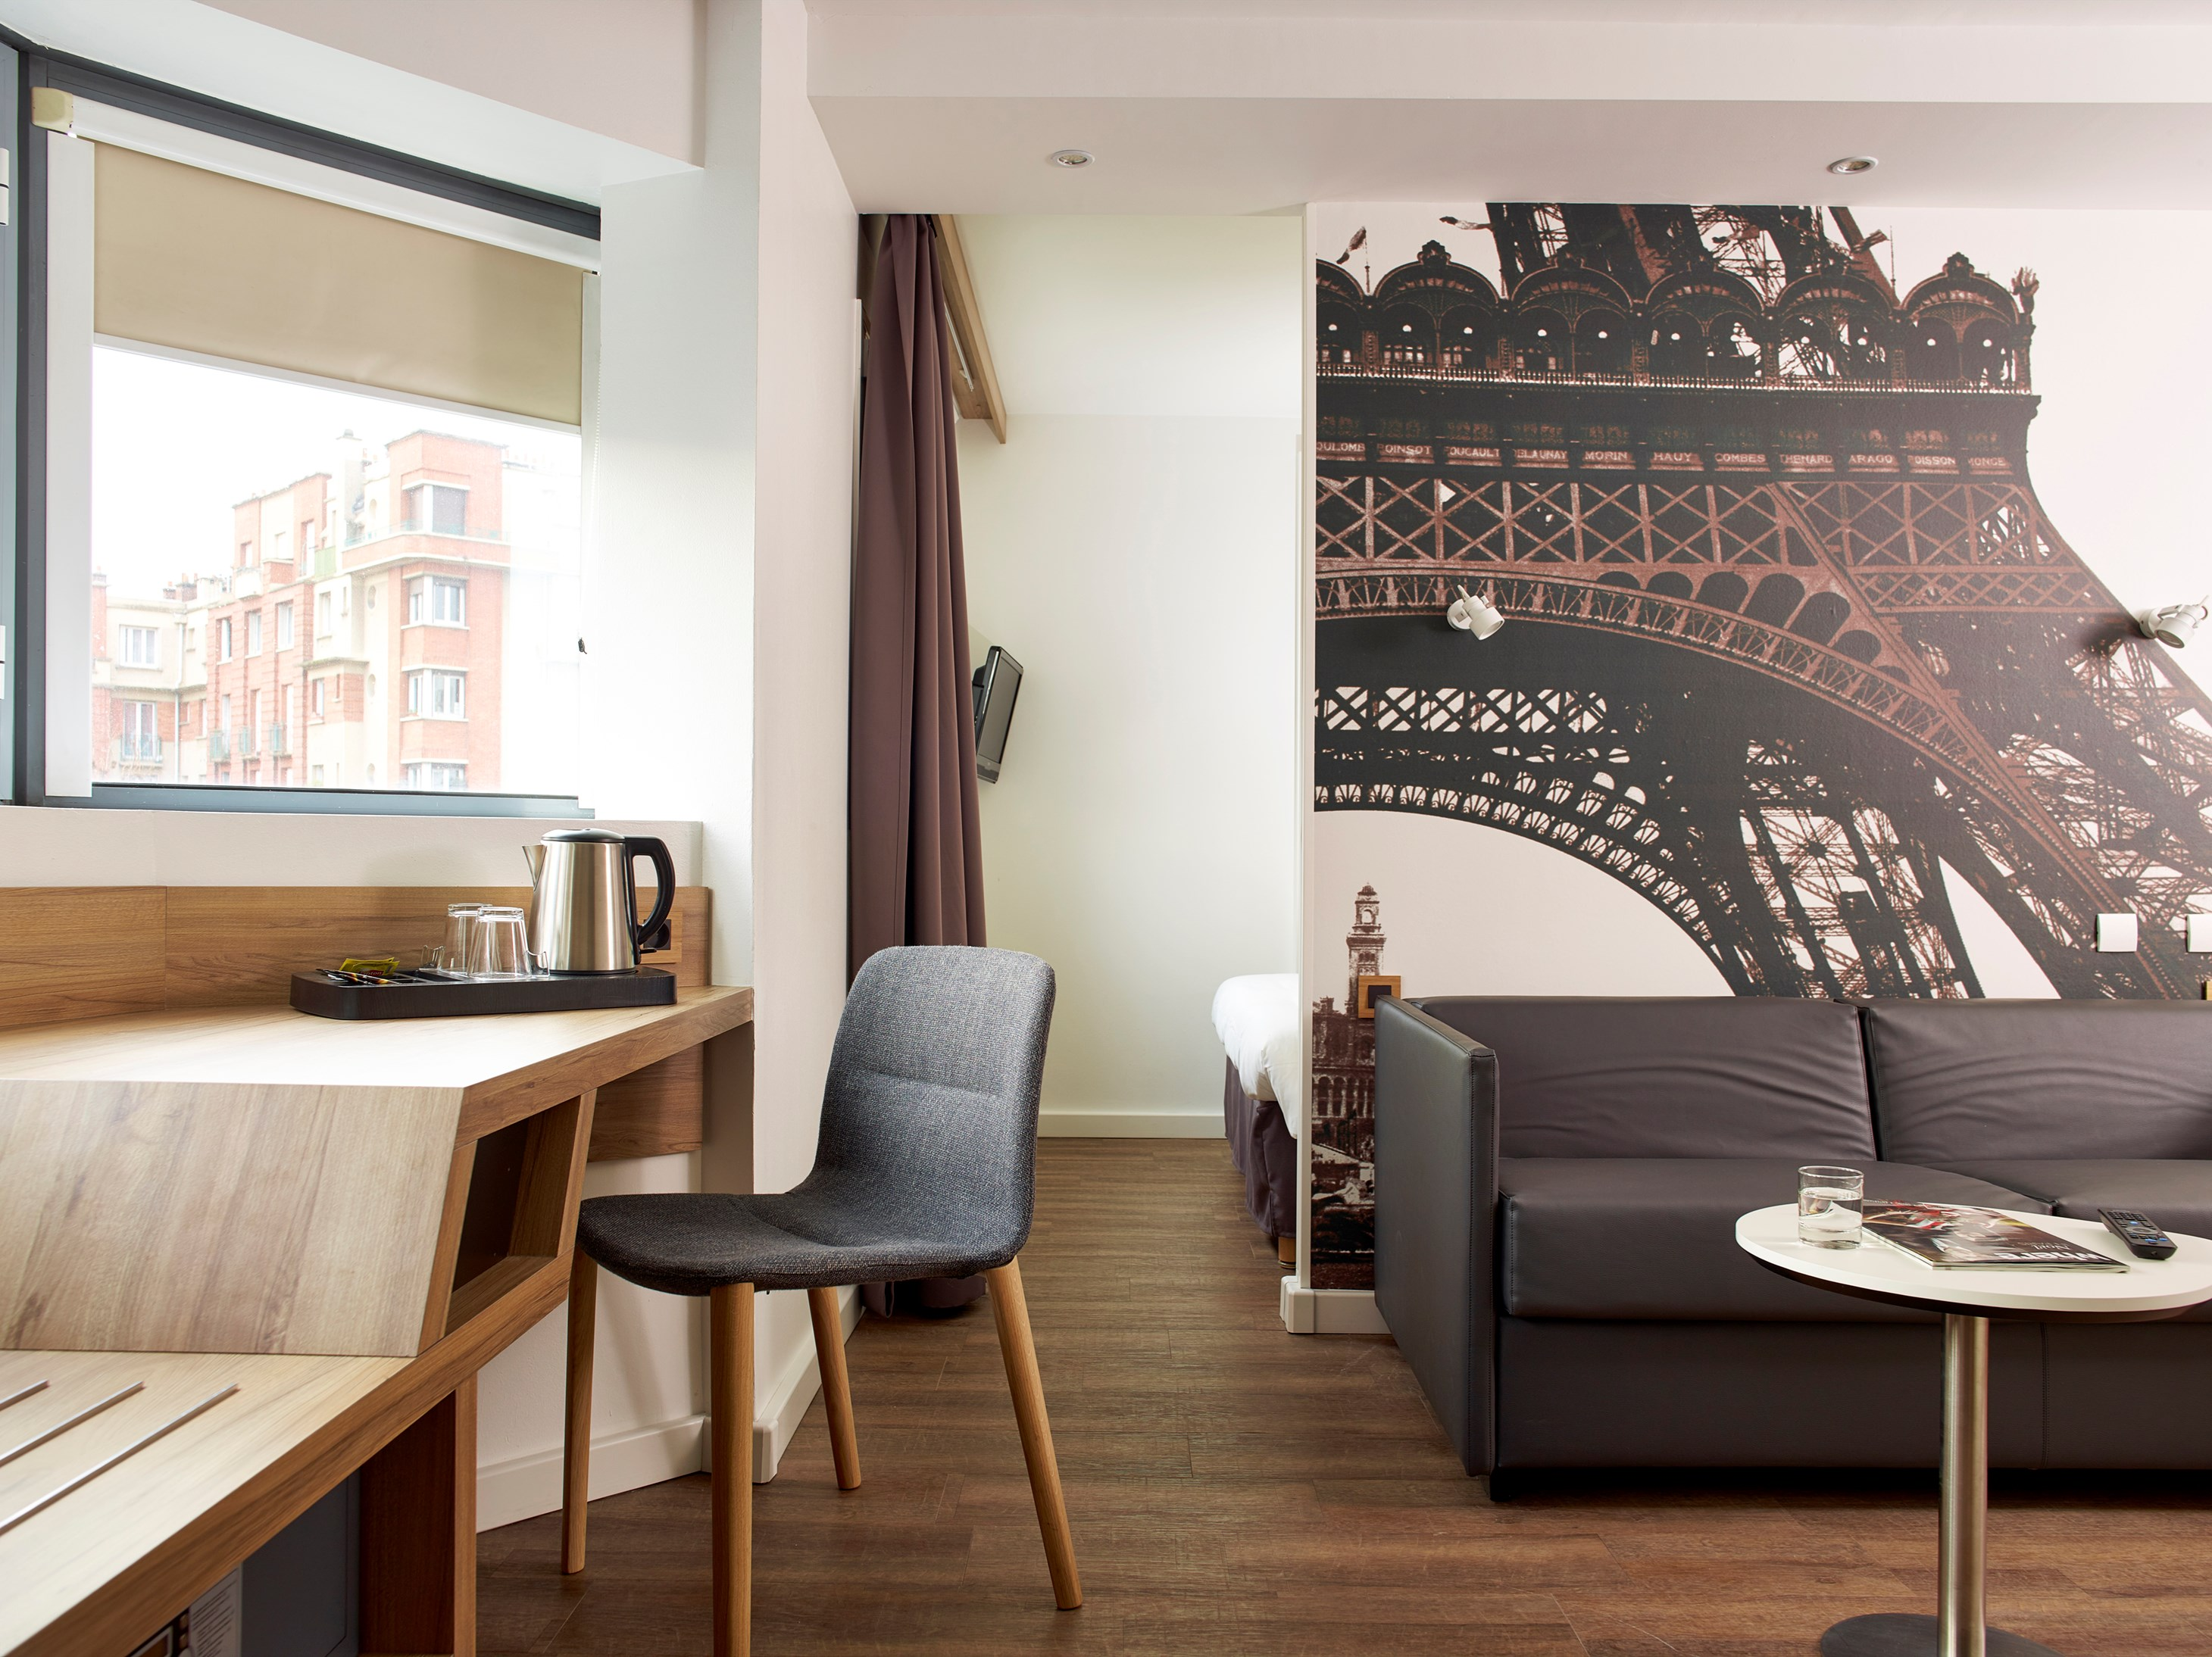 Suites Junior Hôtel Median Paris Porte de Versailles